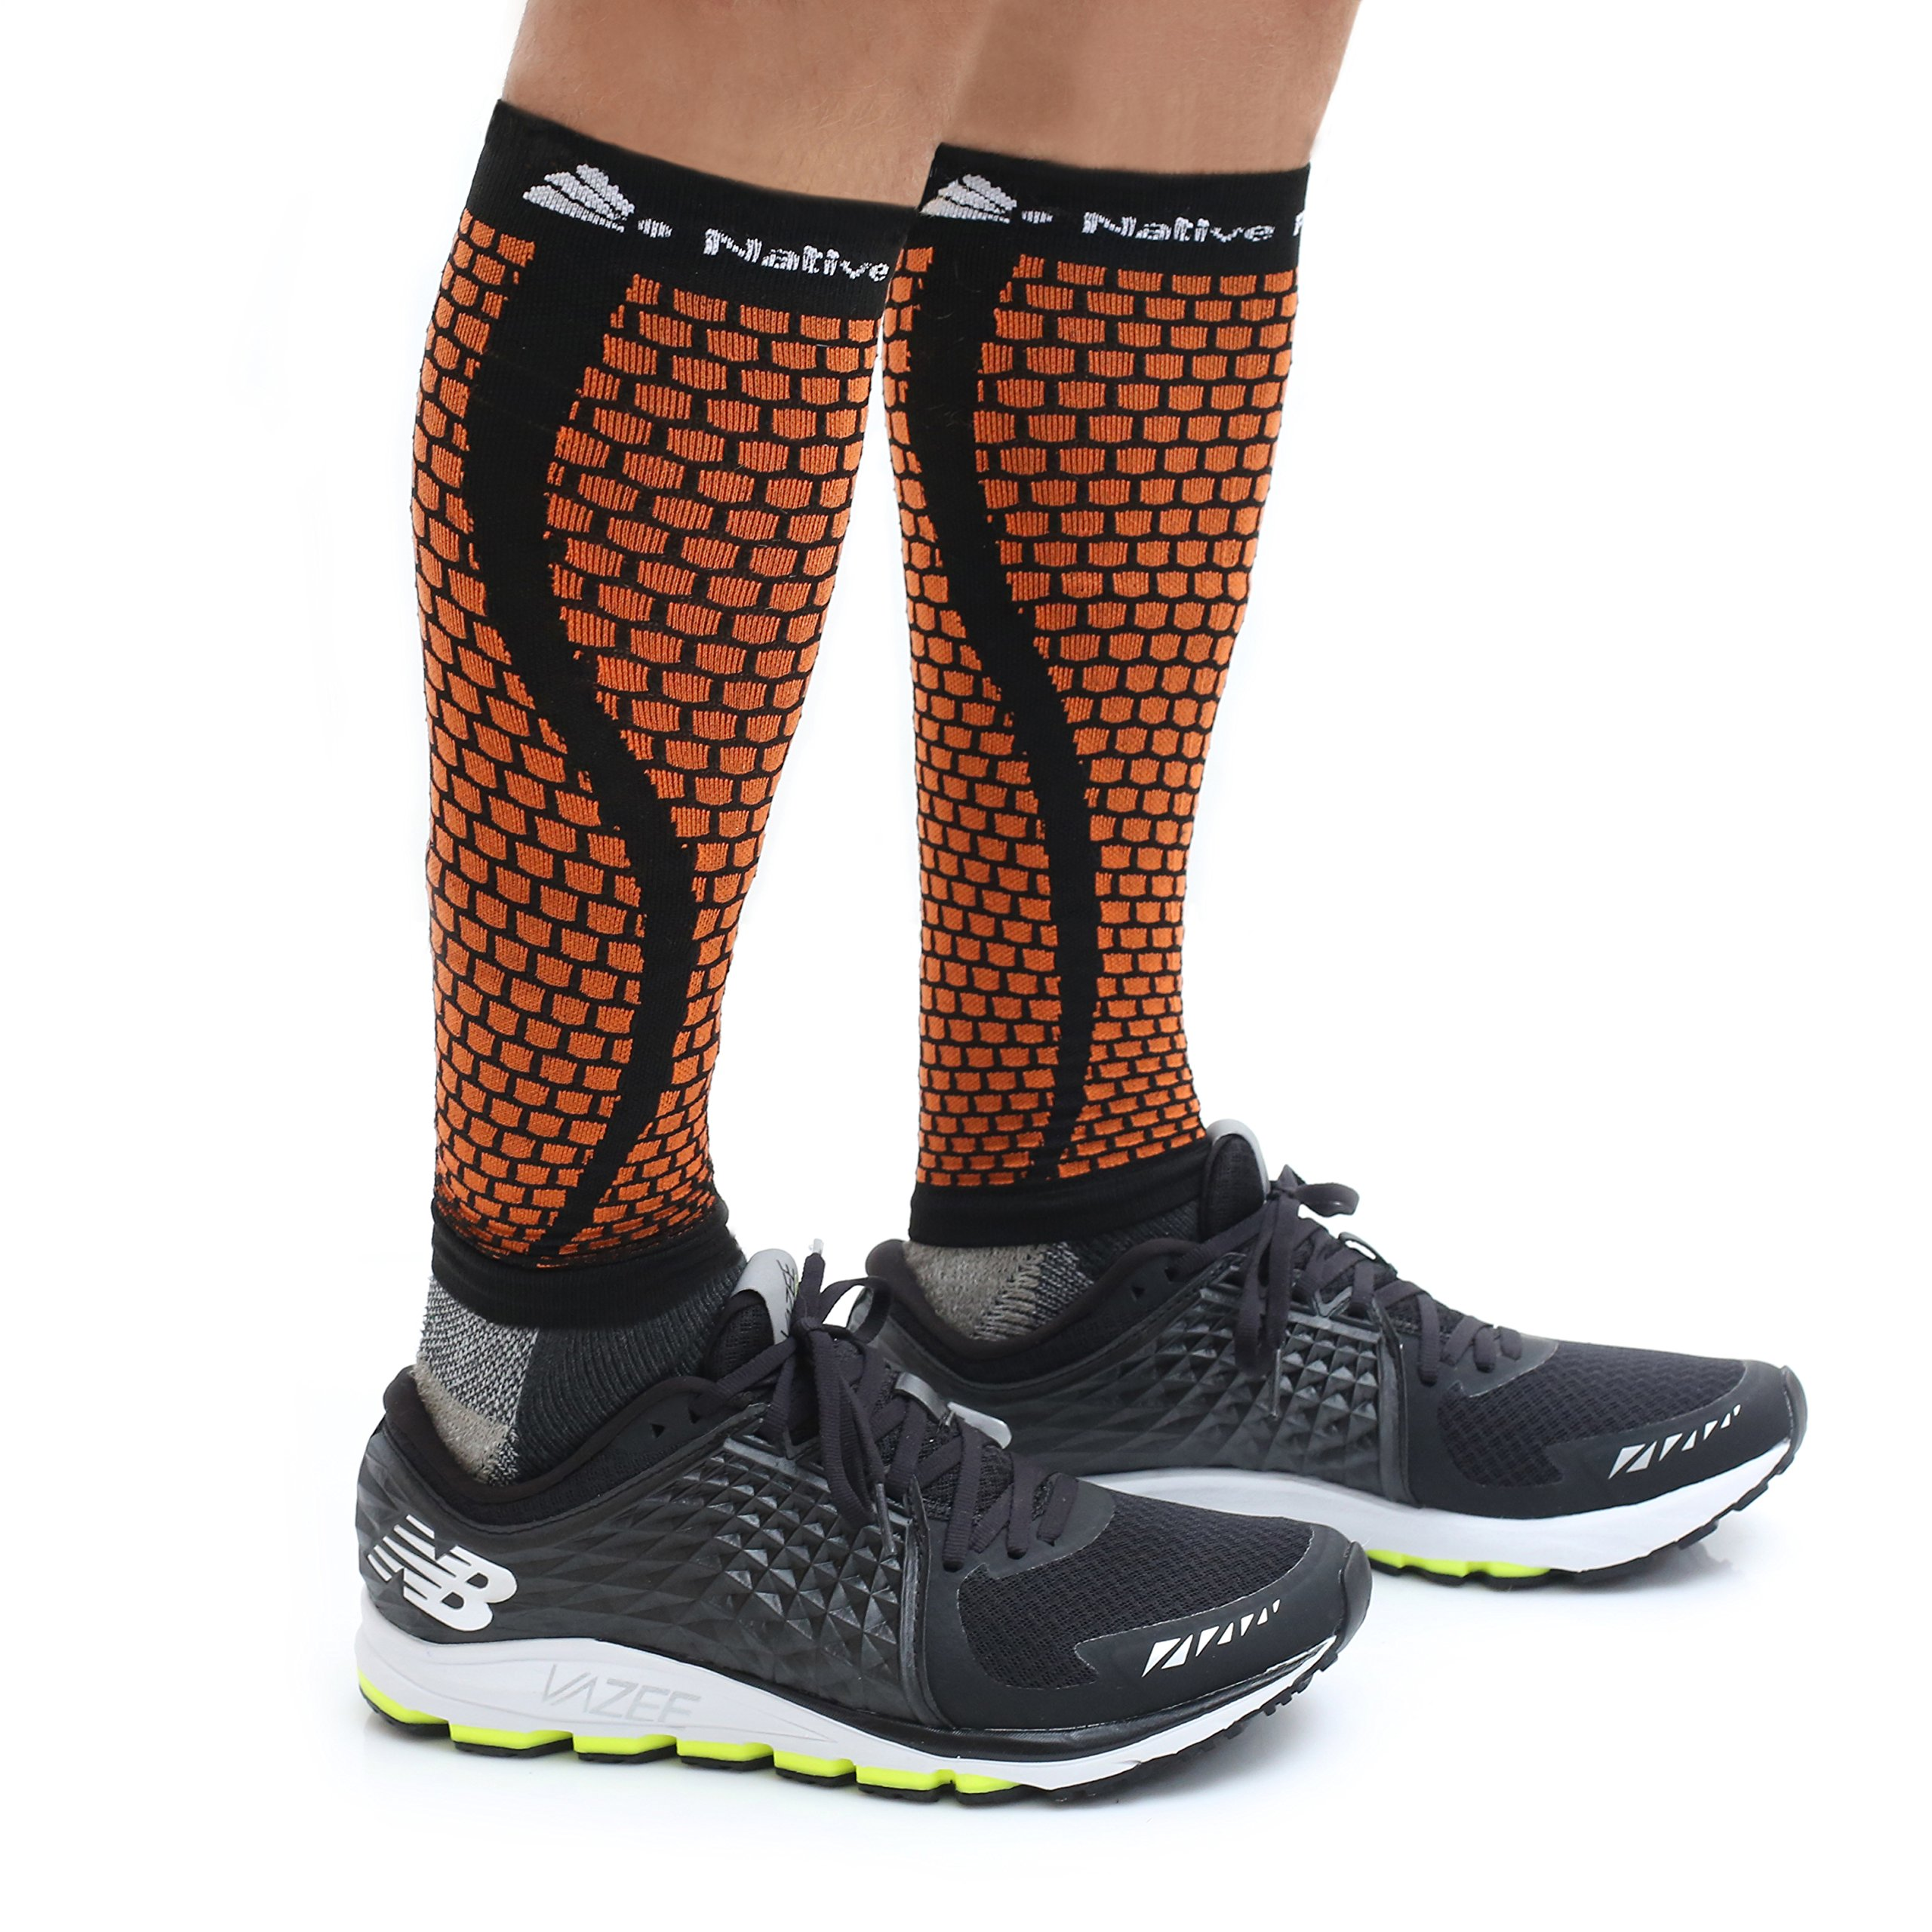 Native Planet HONEYCOMB Calf Compression Sleeves Unisex, MD's Choice, Large - XL, Black